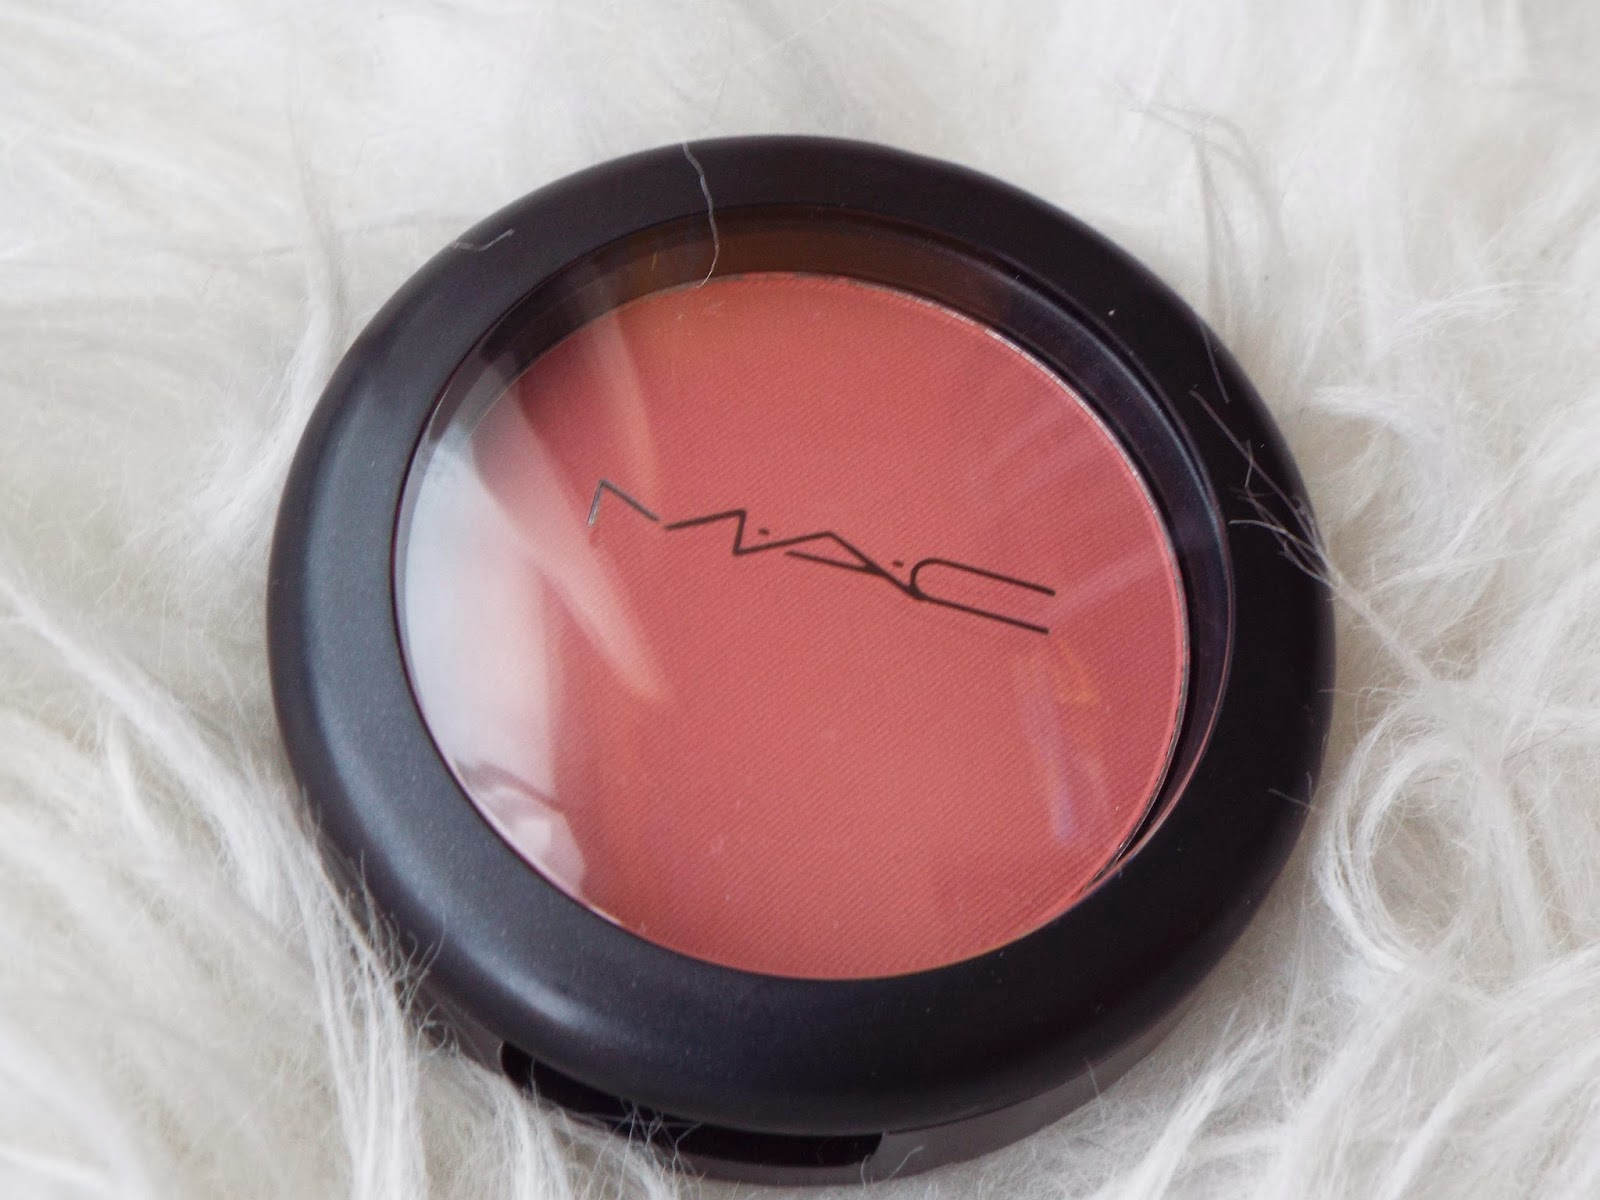 mac sheertone pinch me